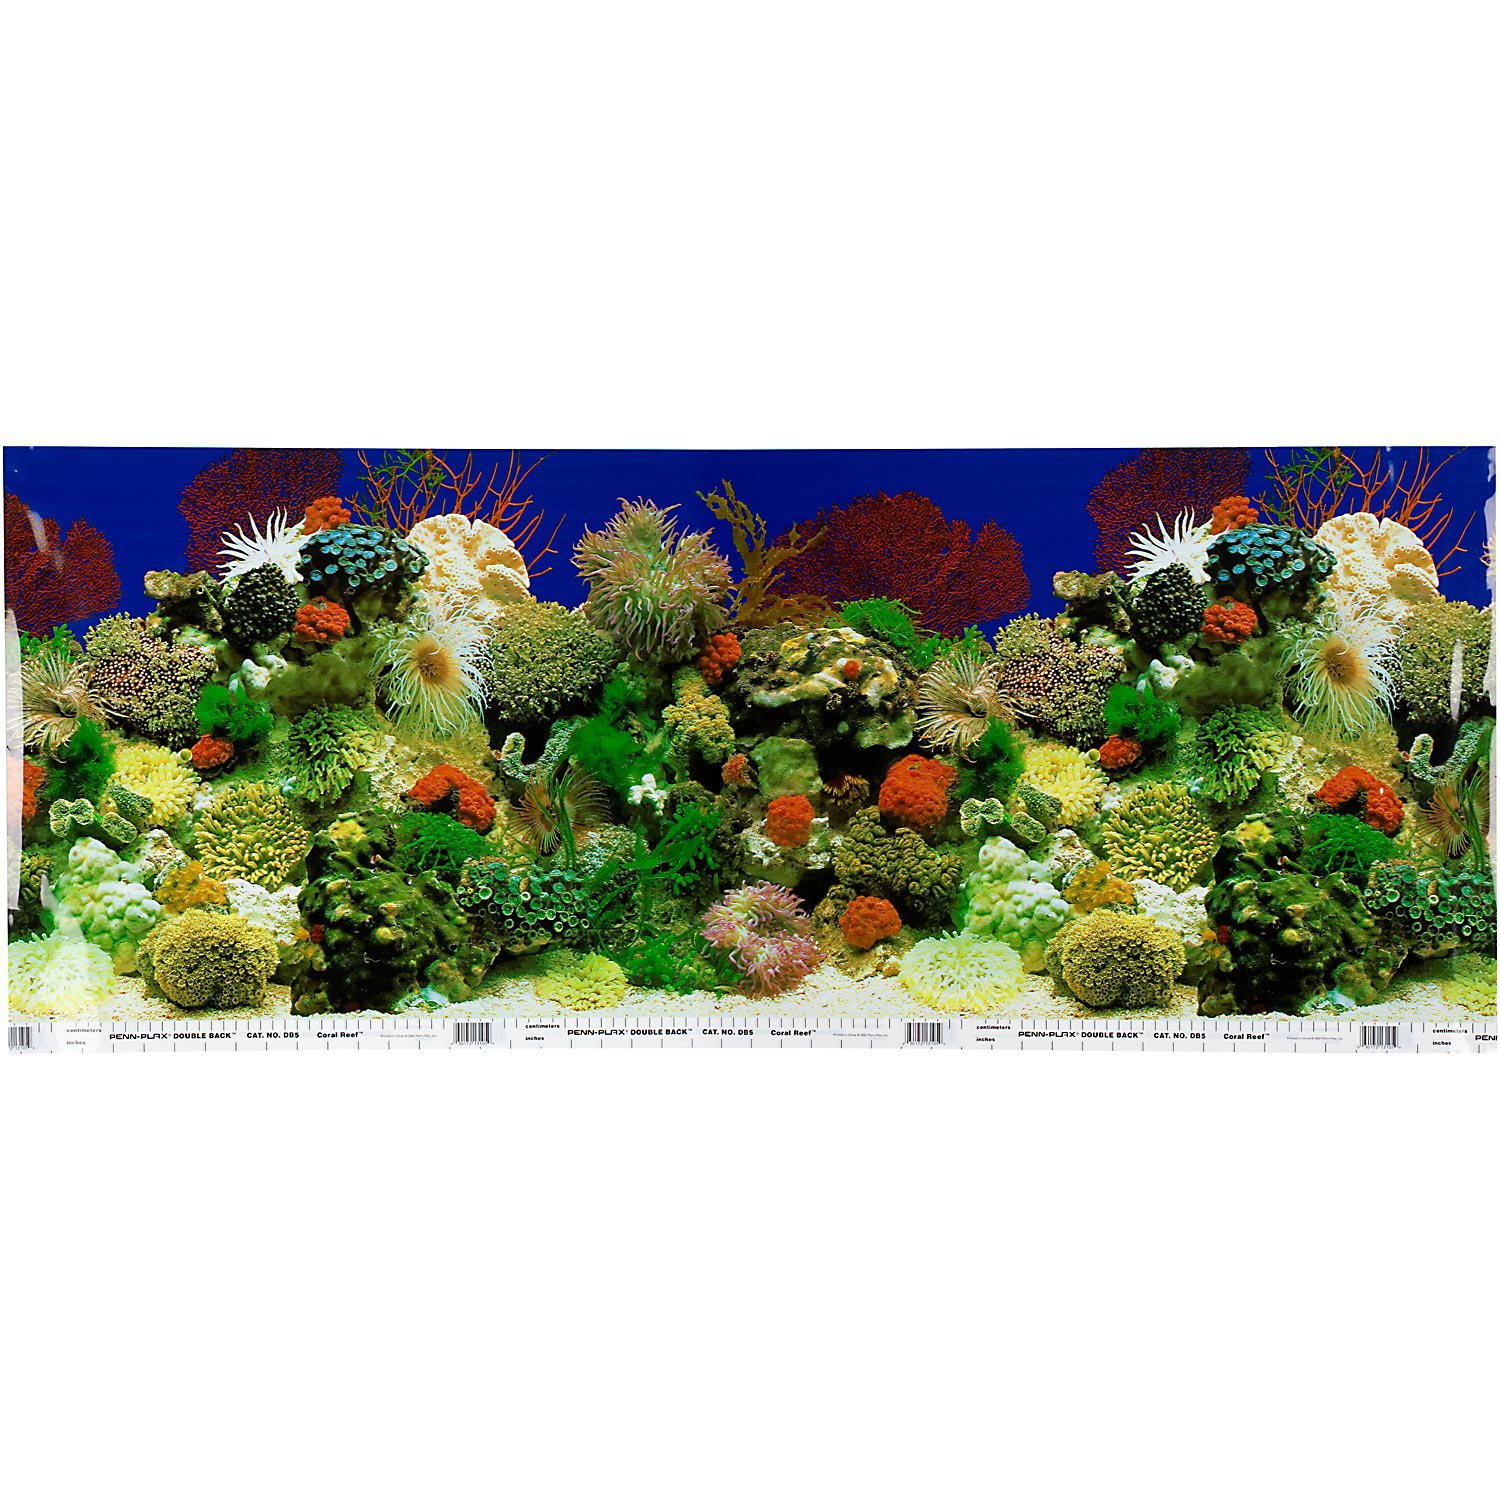 Petco double sided amazon aquarium background petco for Amazon fish tanks for sale